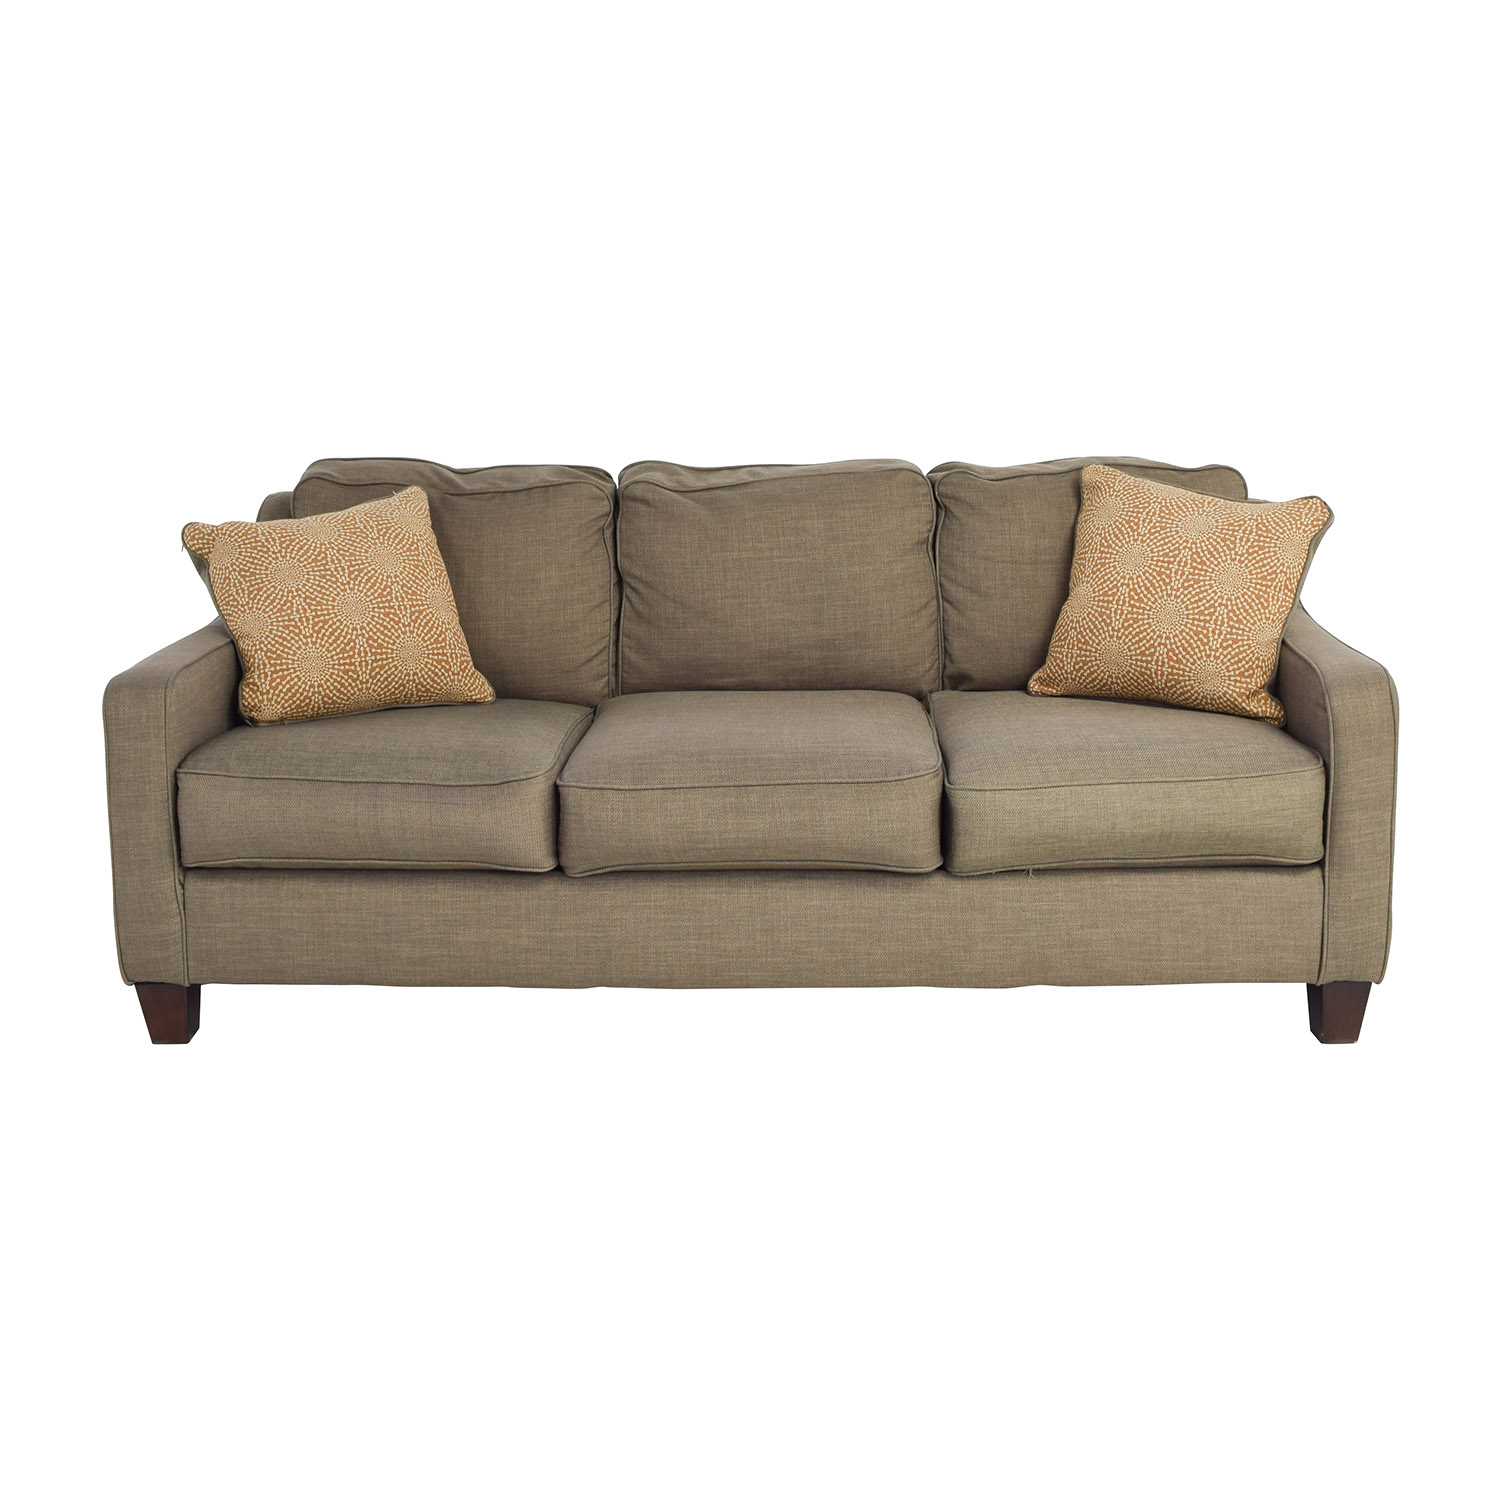 Loveseat Sofa Bed Ashley Furniture: Belona Luna Sofa On A Budget